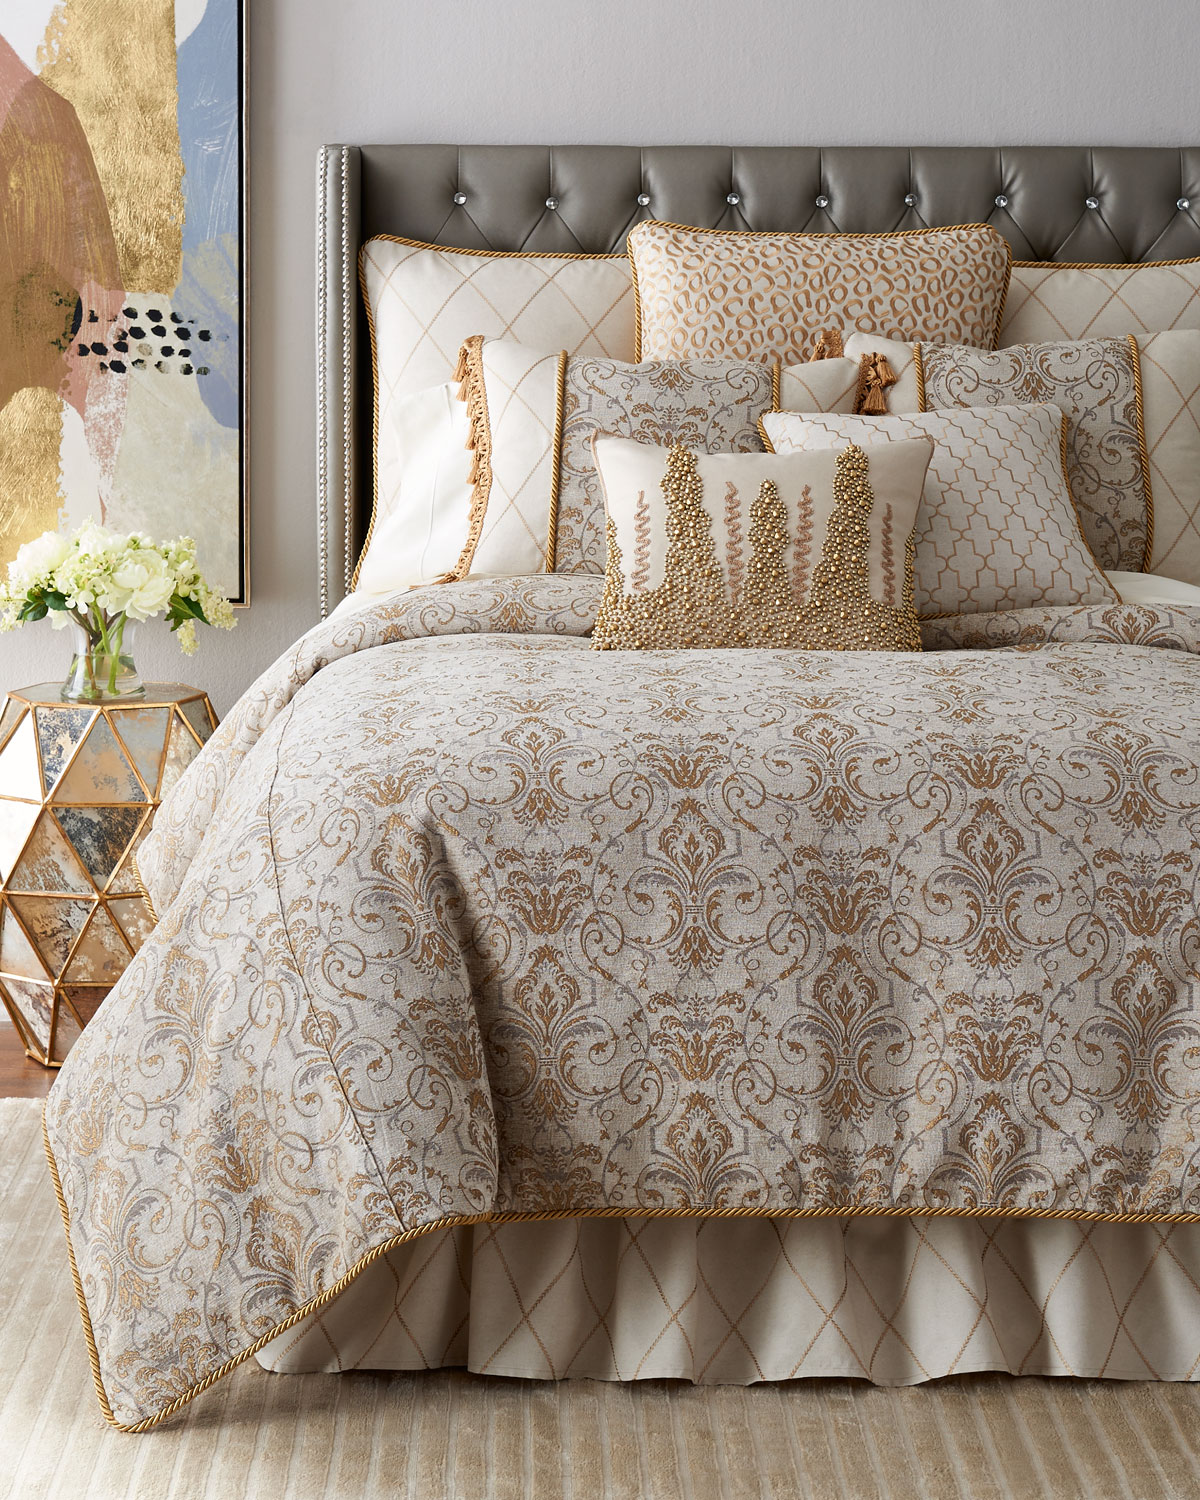 Queen Adeline Duvet Cover